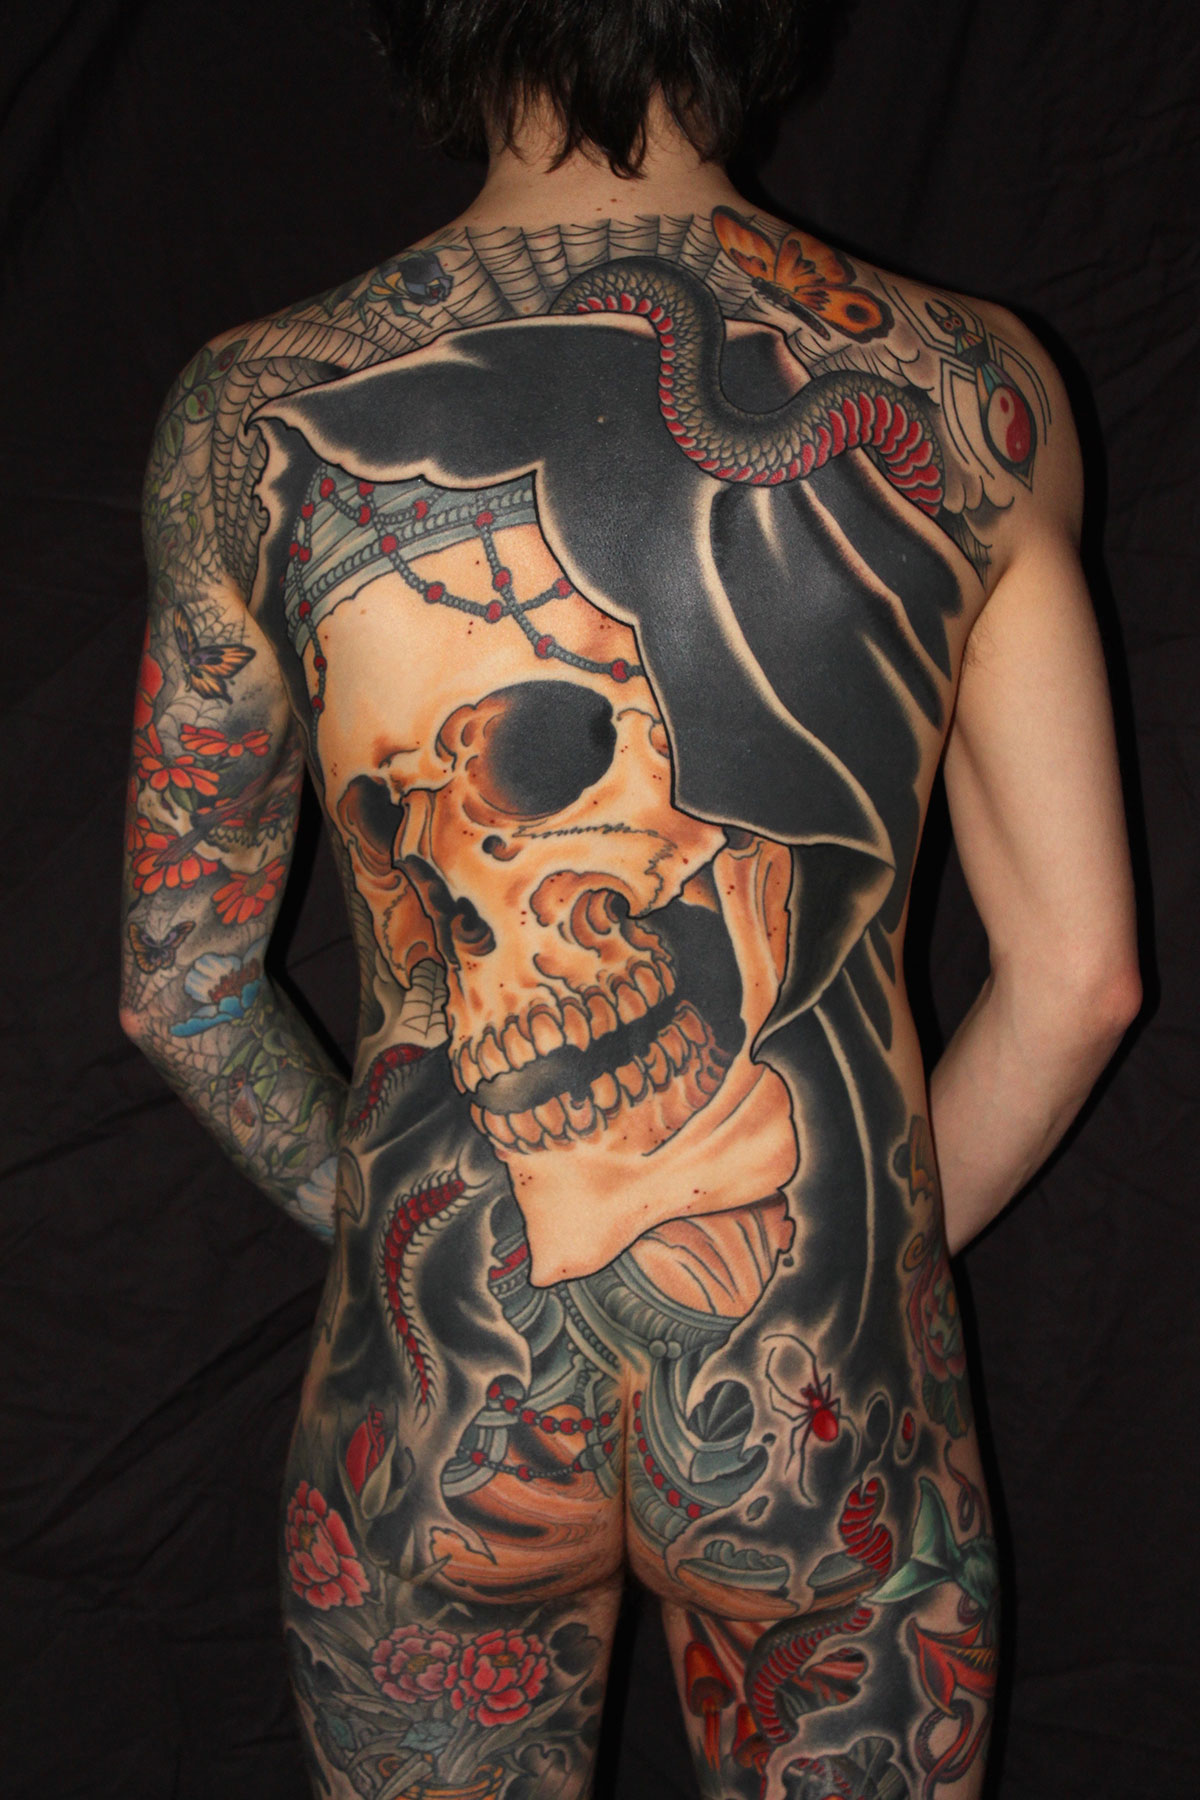 Chris ODonnell Tattoo Artist At Kings Avenue Tattoo